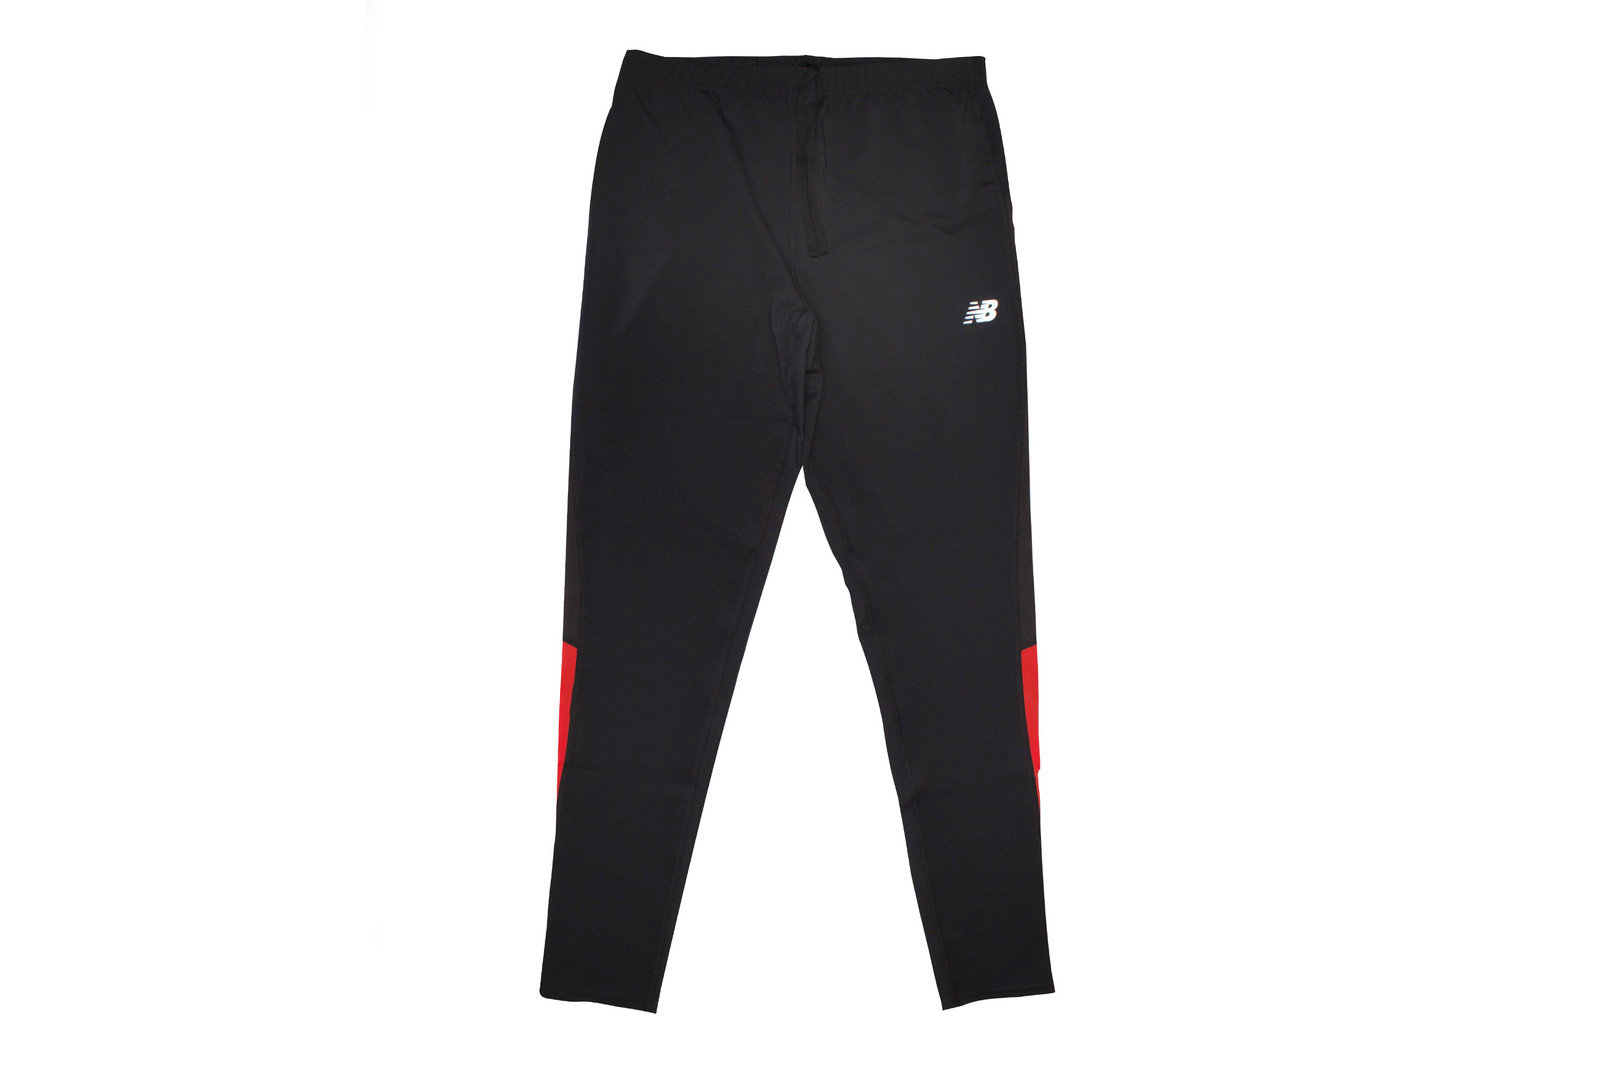 Image of Accelerate Performance Training Tights